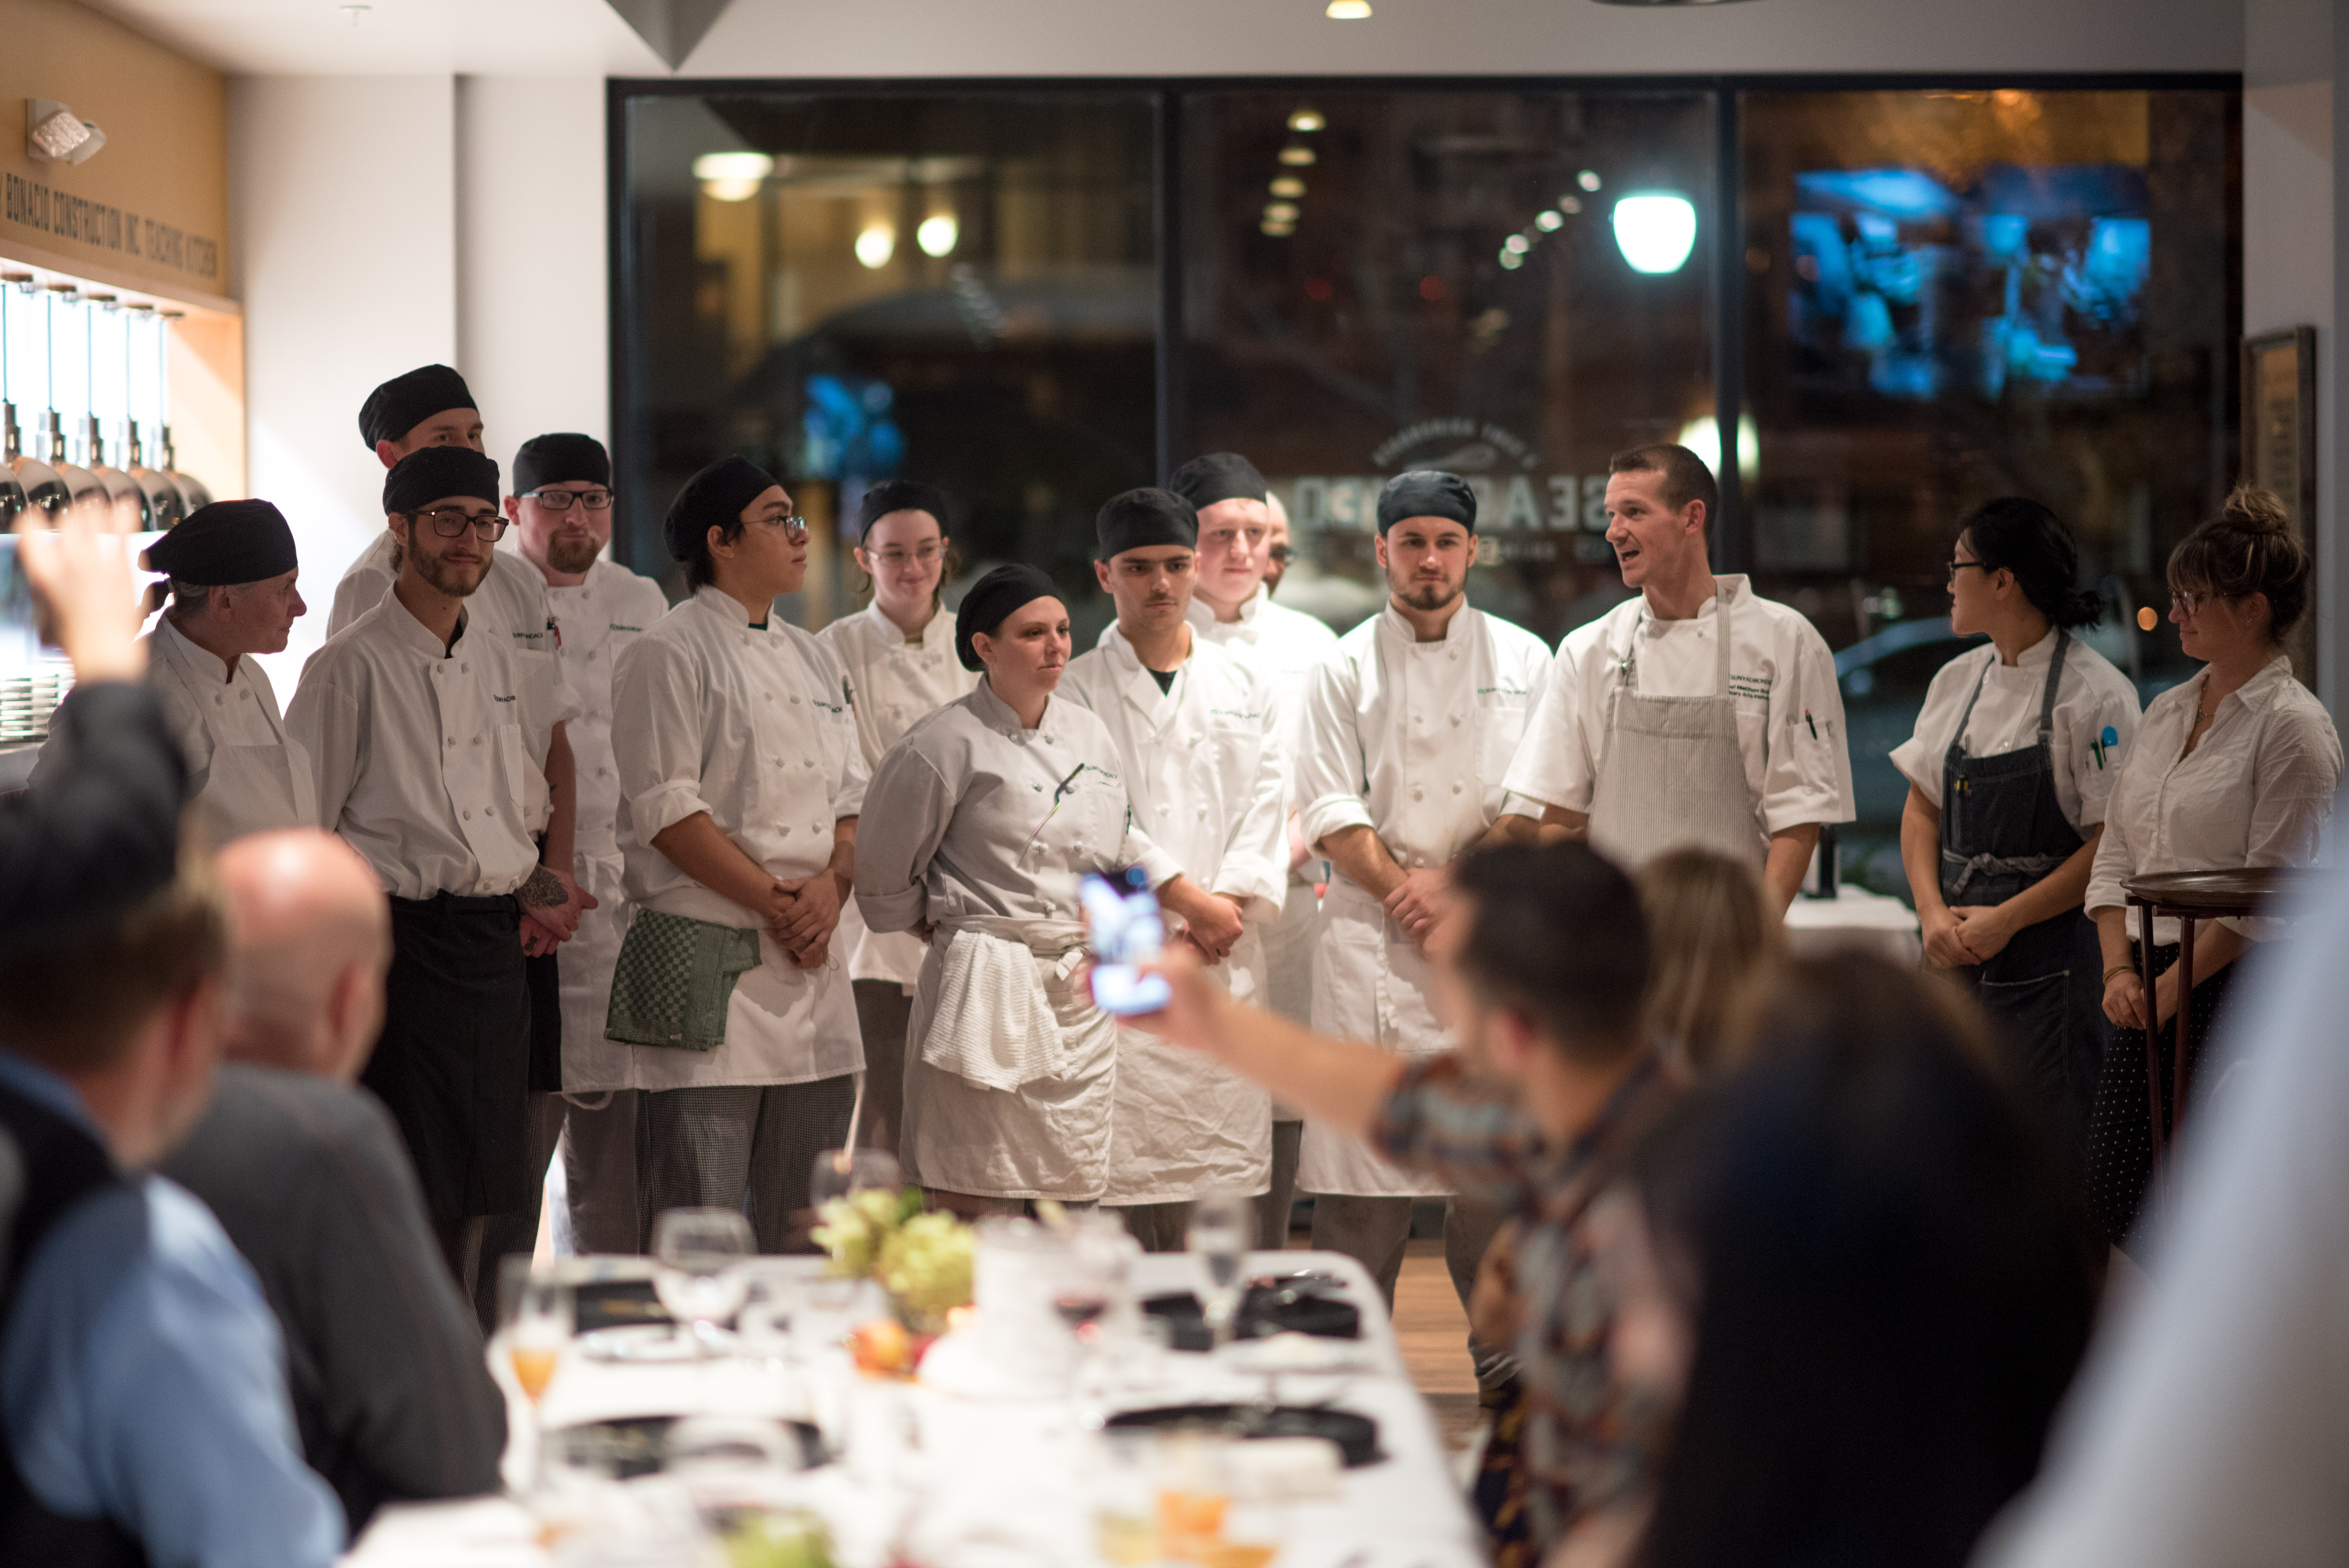 A group of culinary students stands in the dining room of Seasoned